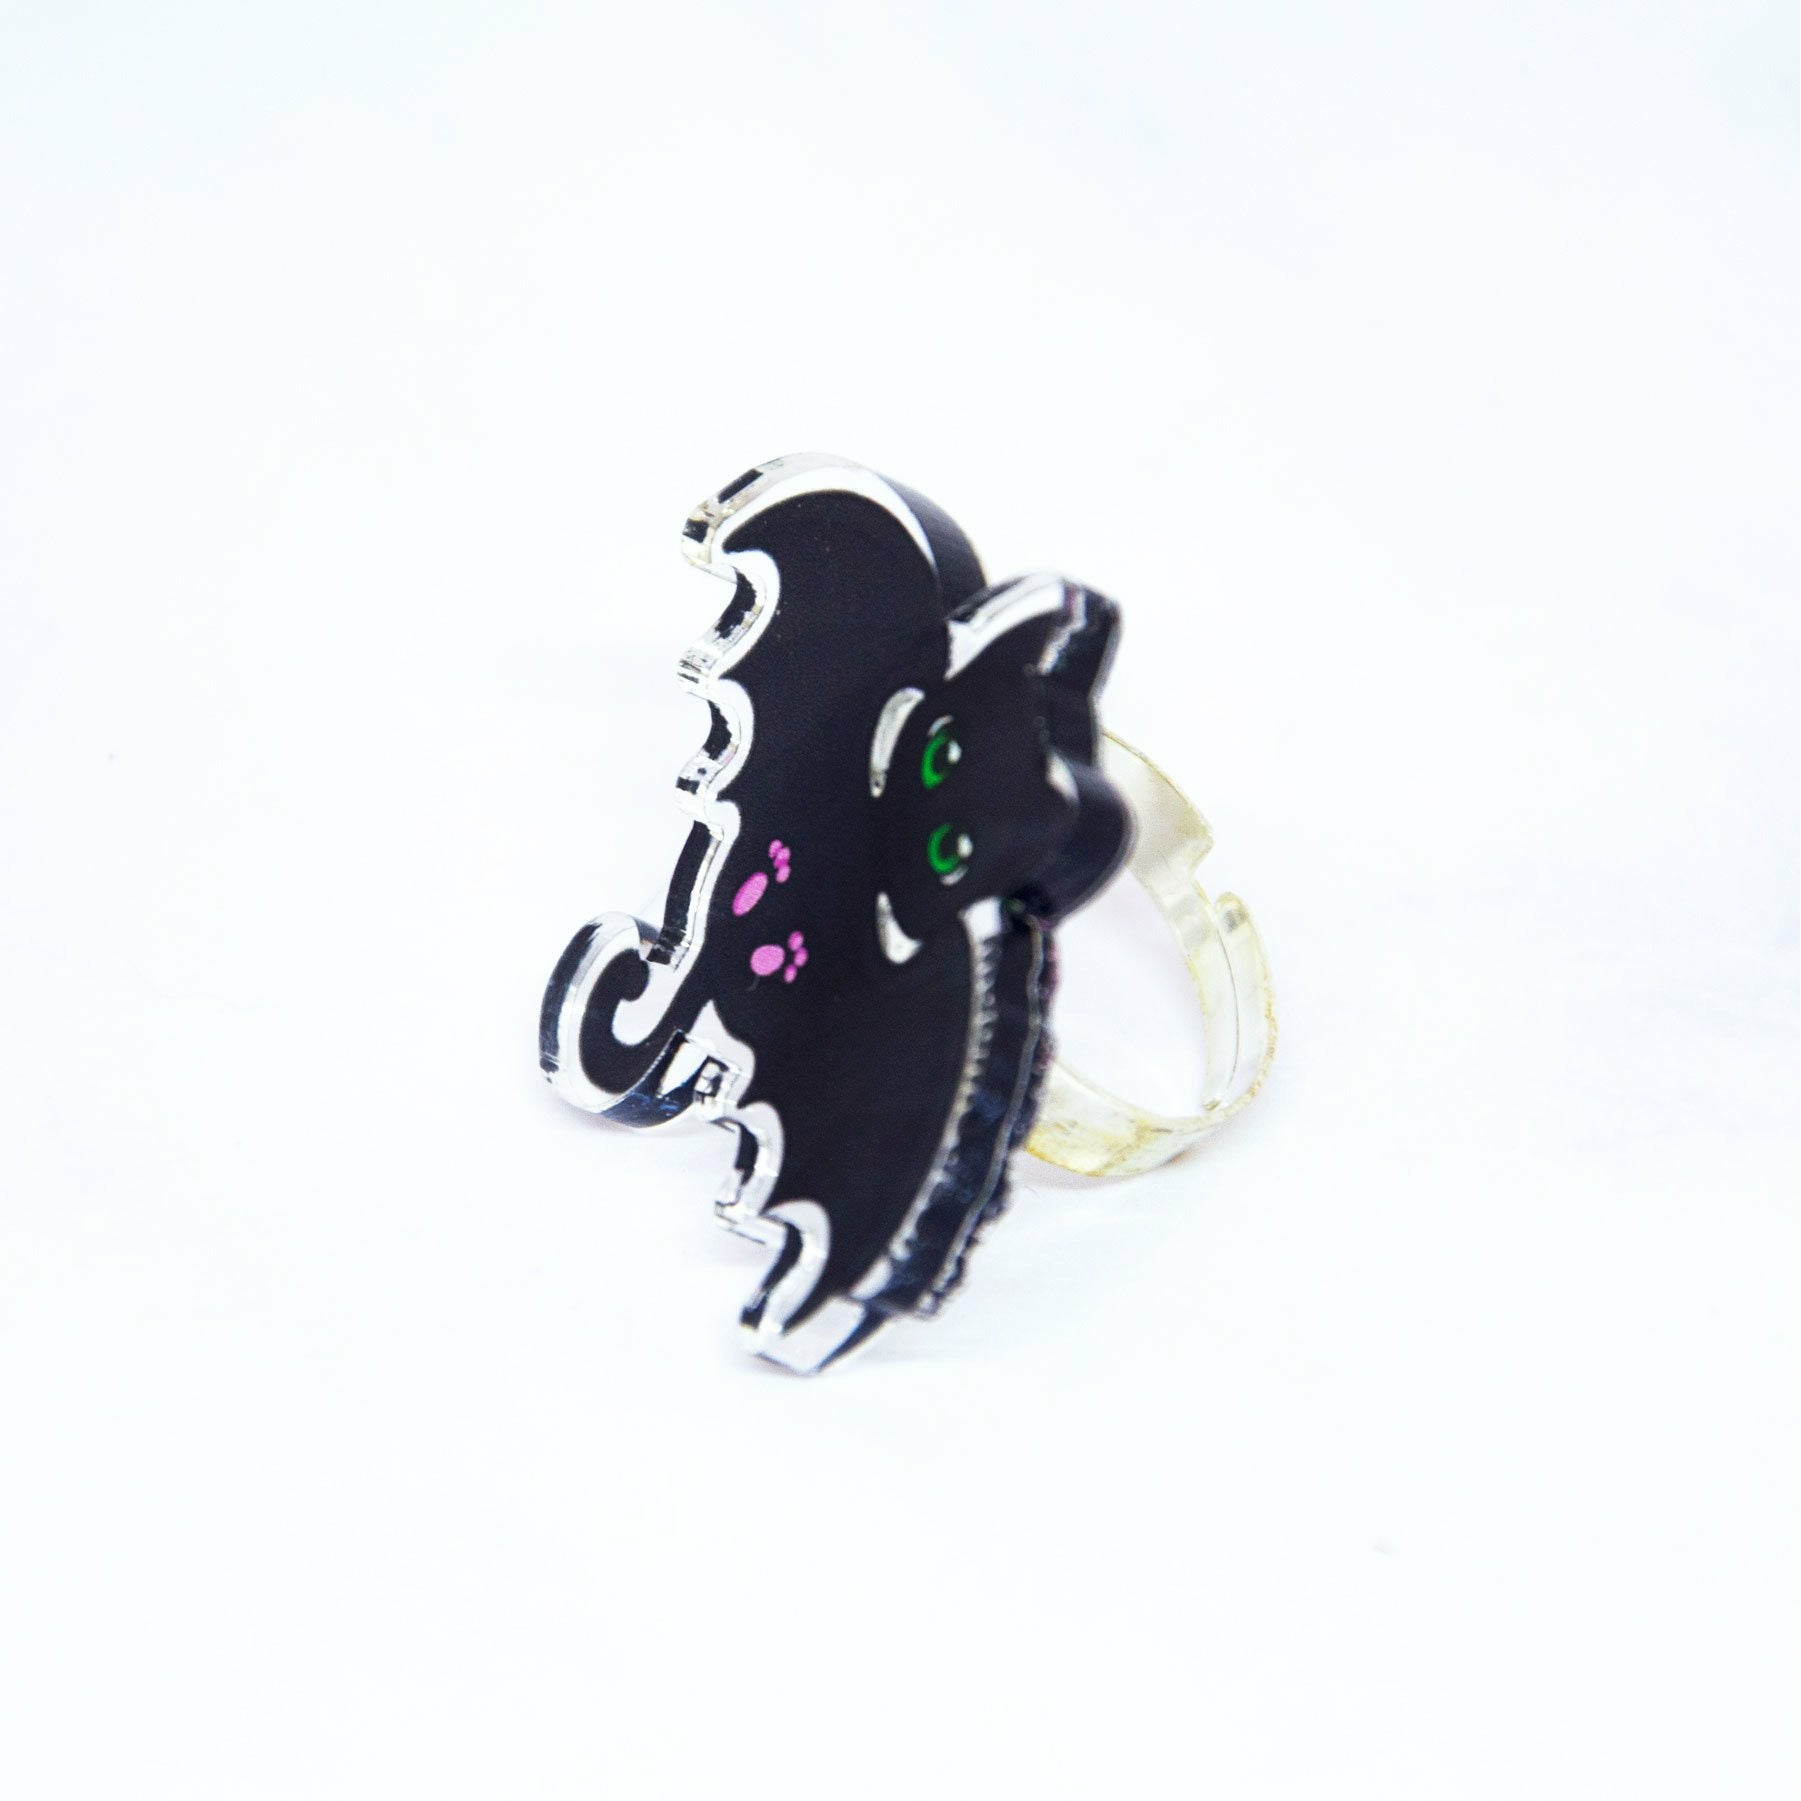 kawaii Halloween grunge bat cat ring - MadModesty